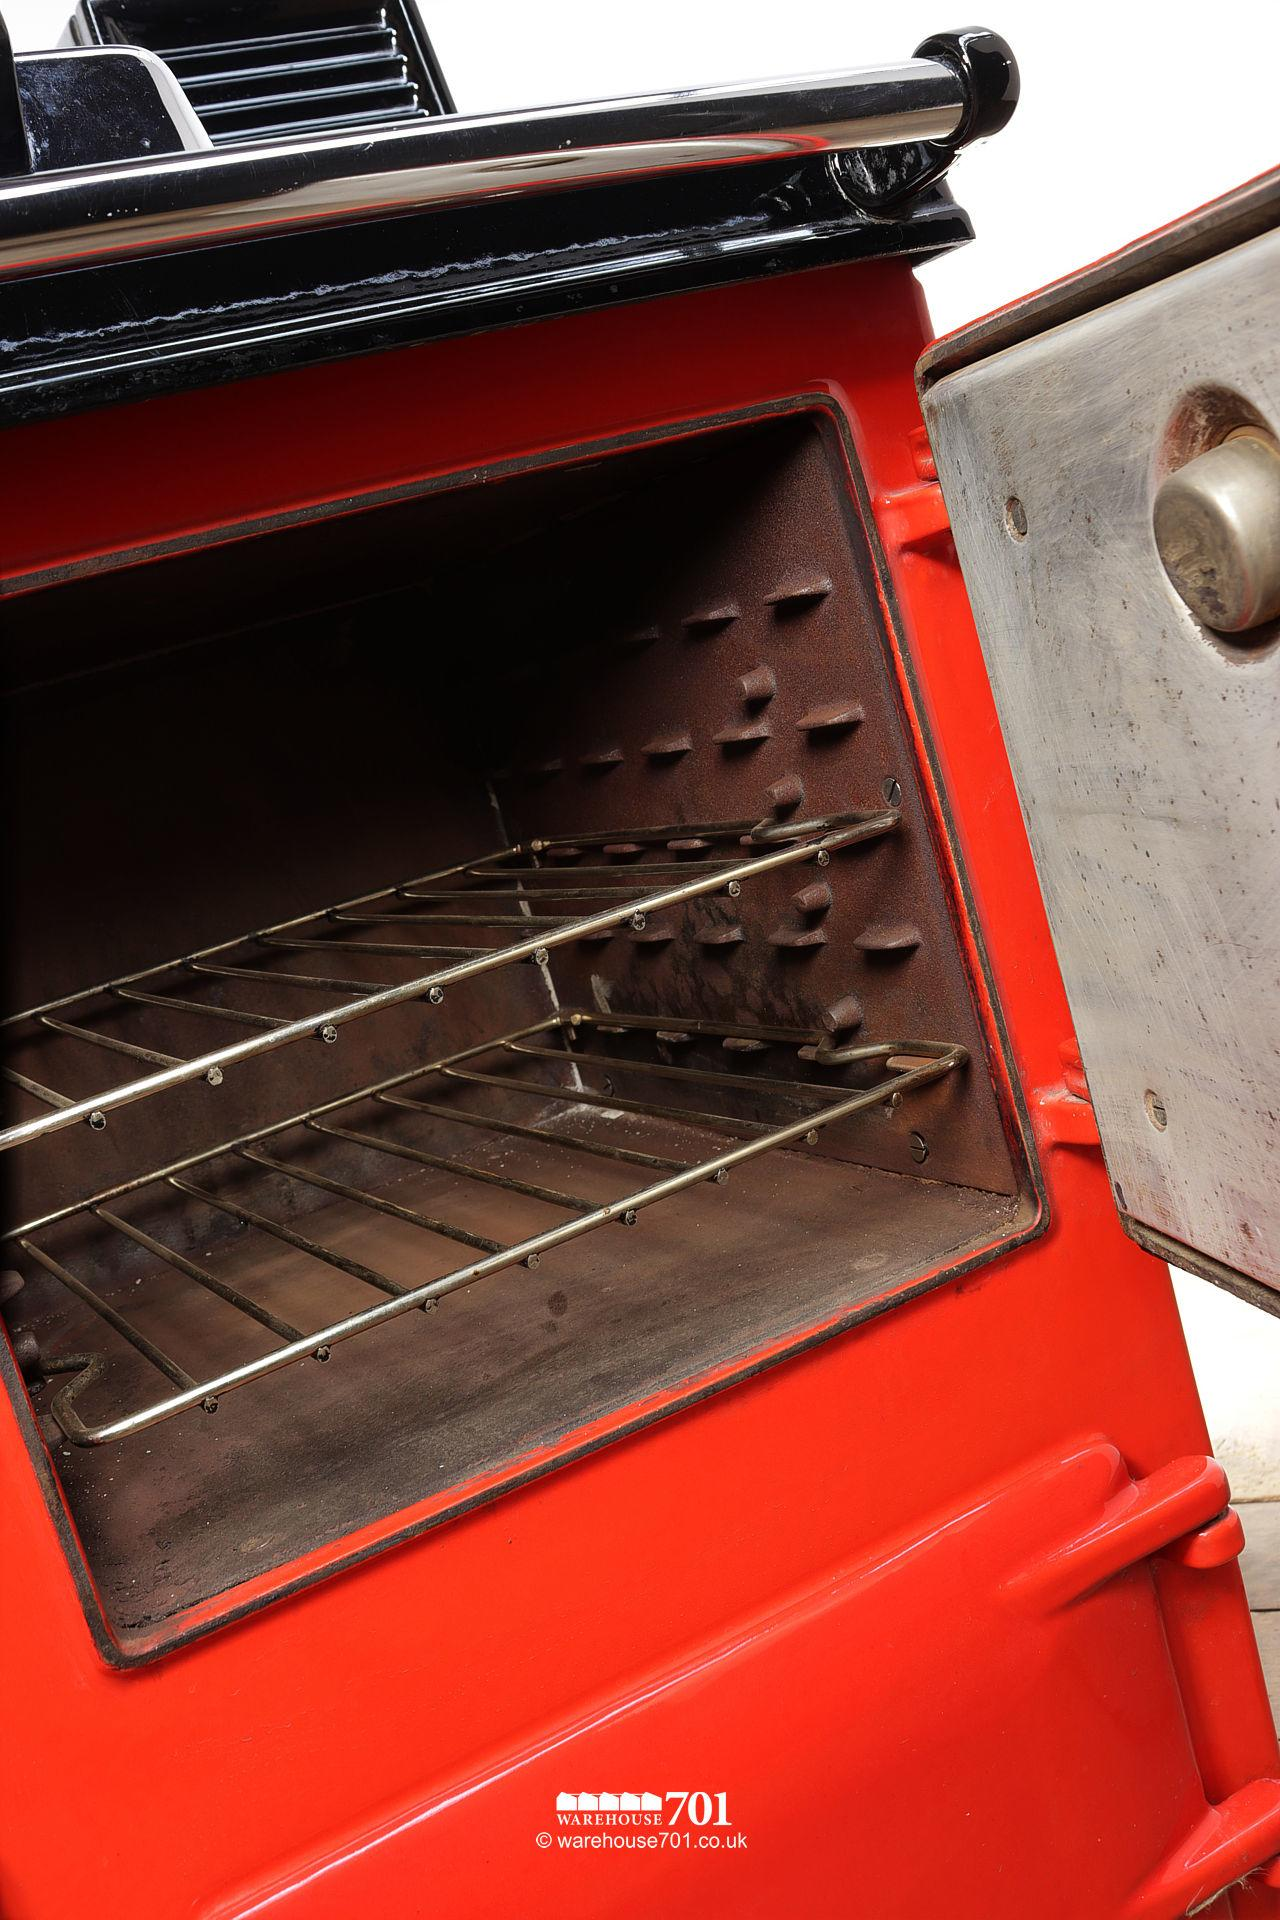 Fine Used Red Rayburn Nouvelle Cooker or Stove #7